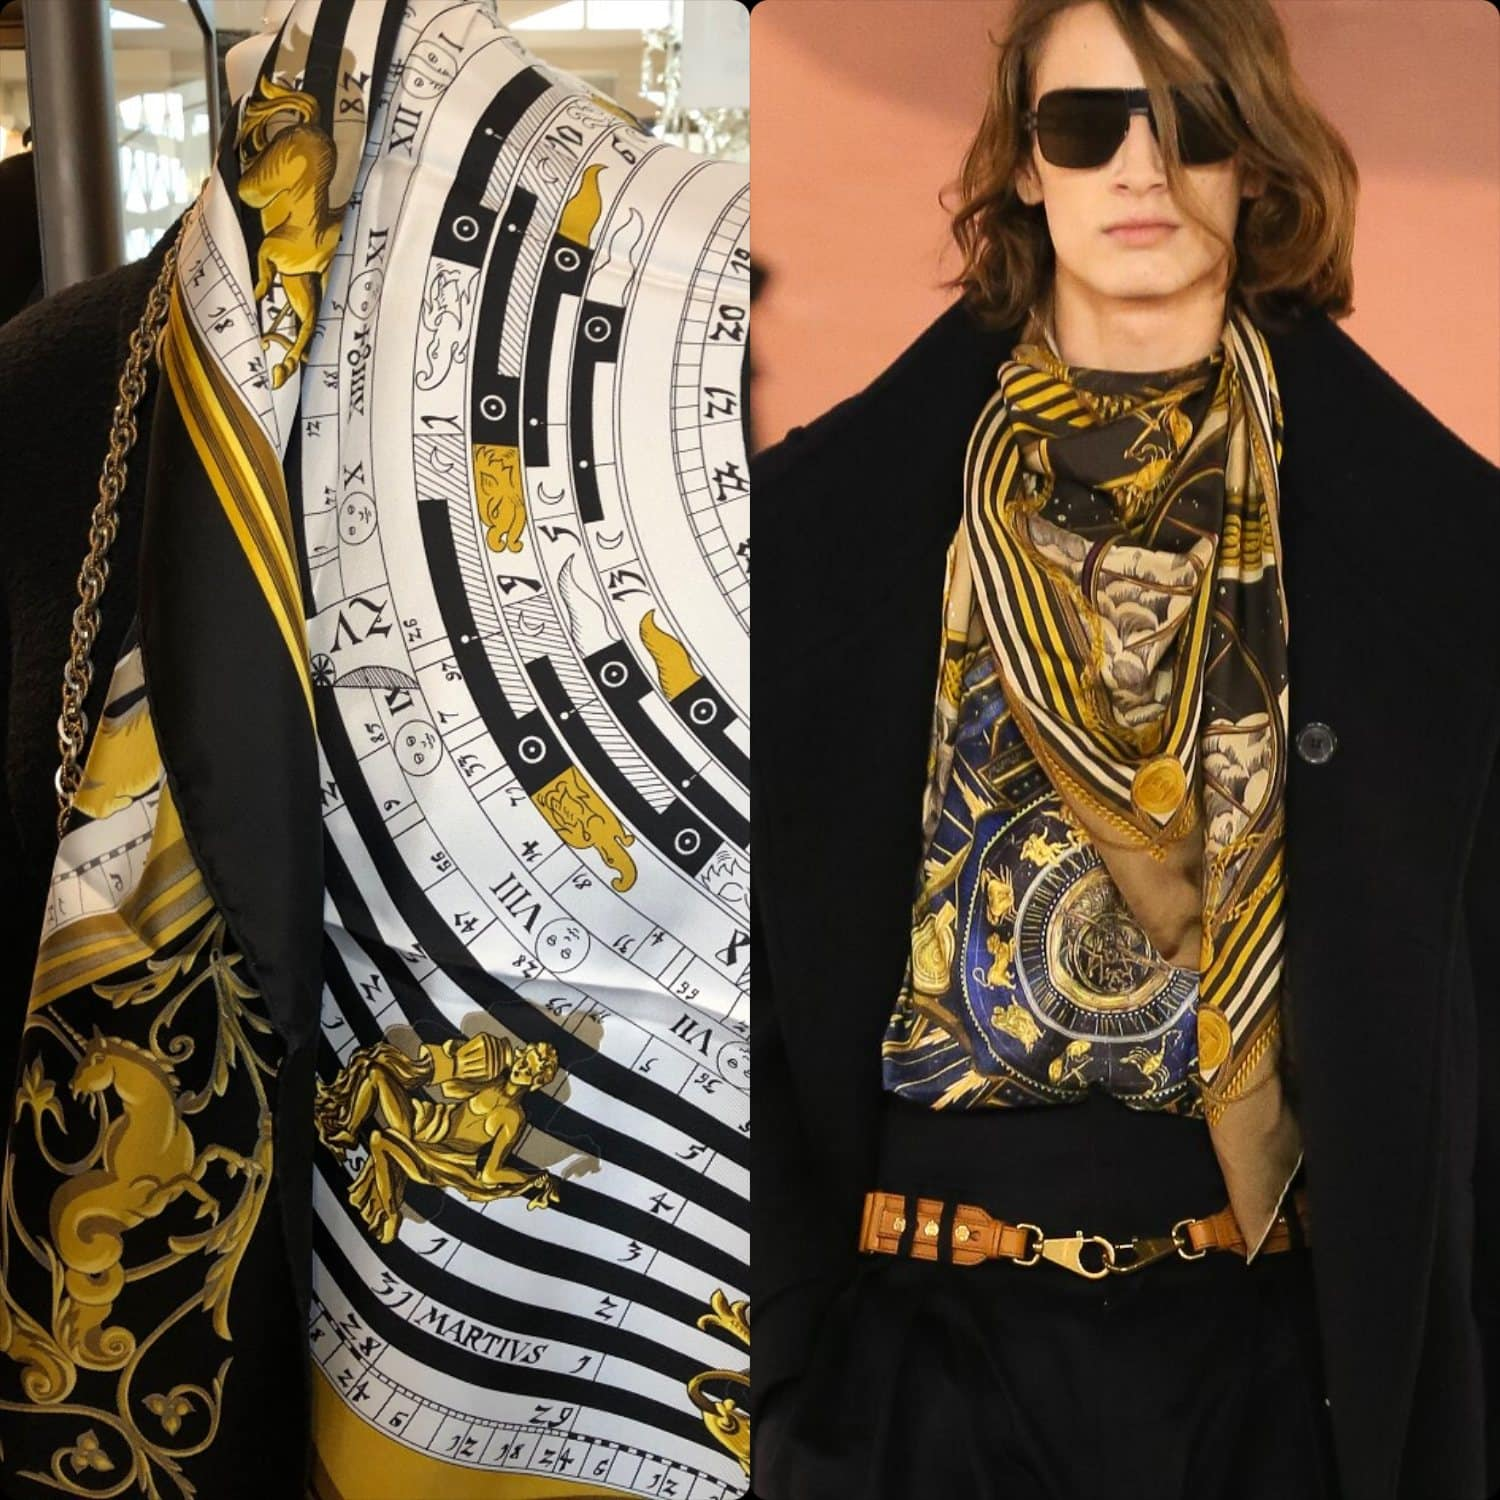 From left to right - Hermes 1990 silk scarf vs Balmain Fall Winter 2020 -2021